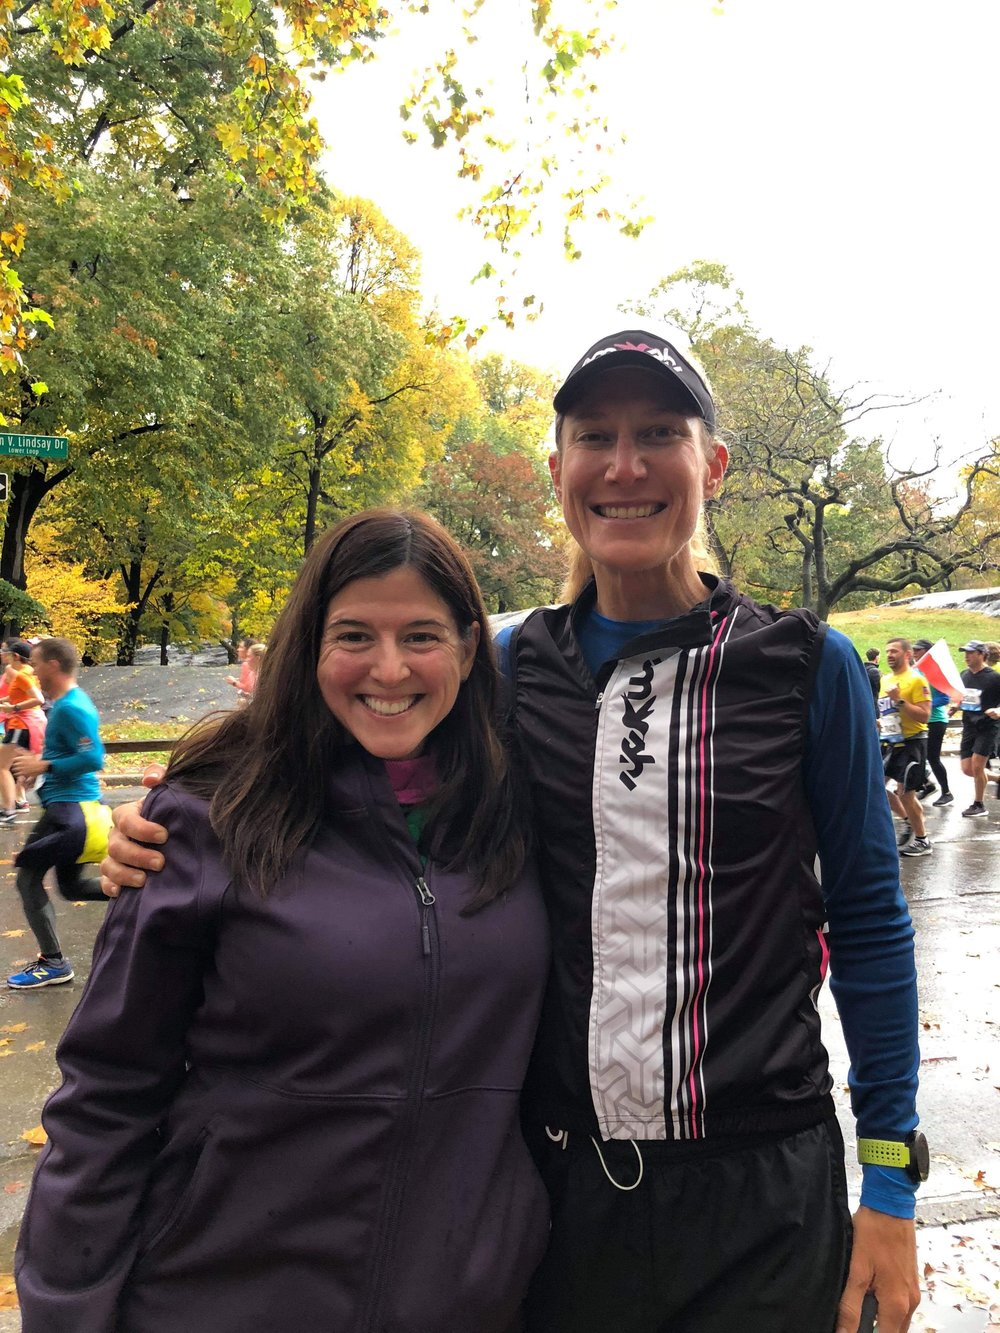 My friend and teammate Sherri Zehner and I in Central Park.